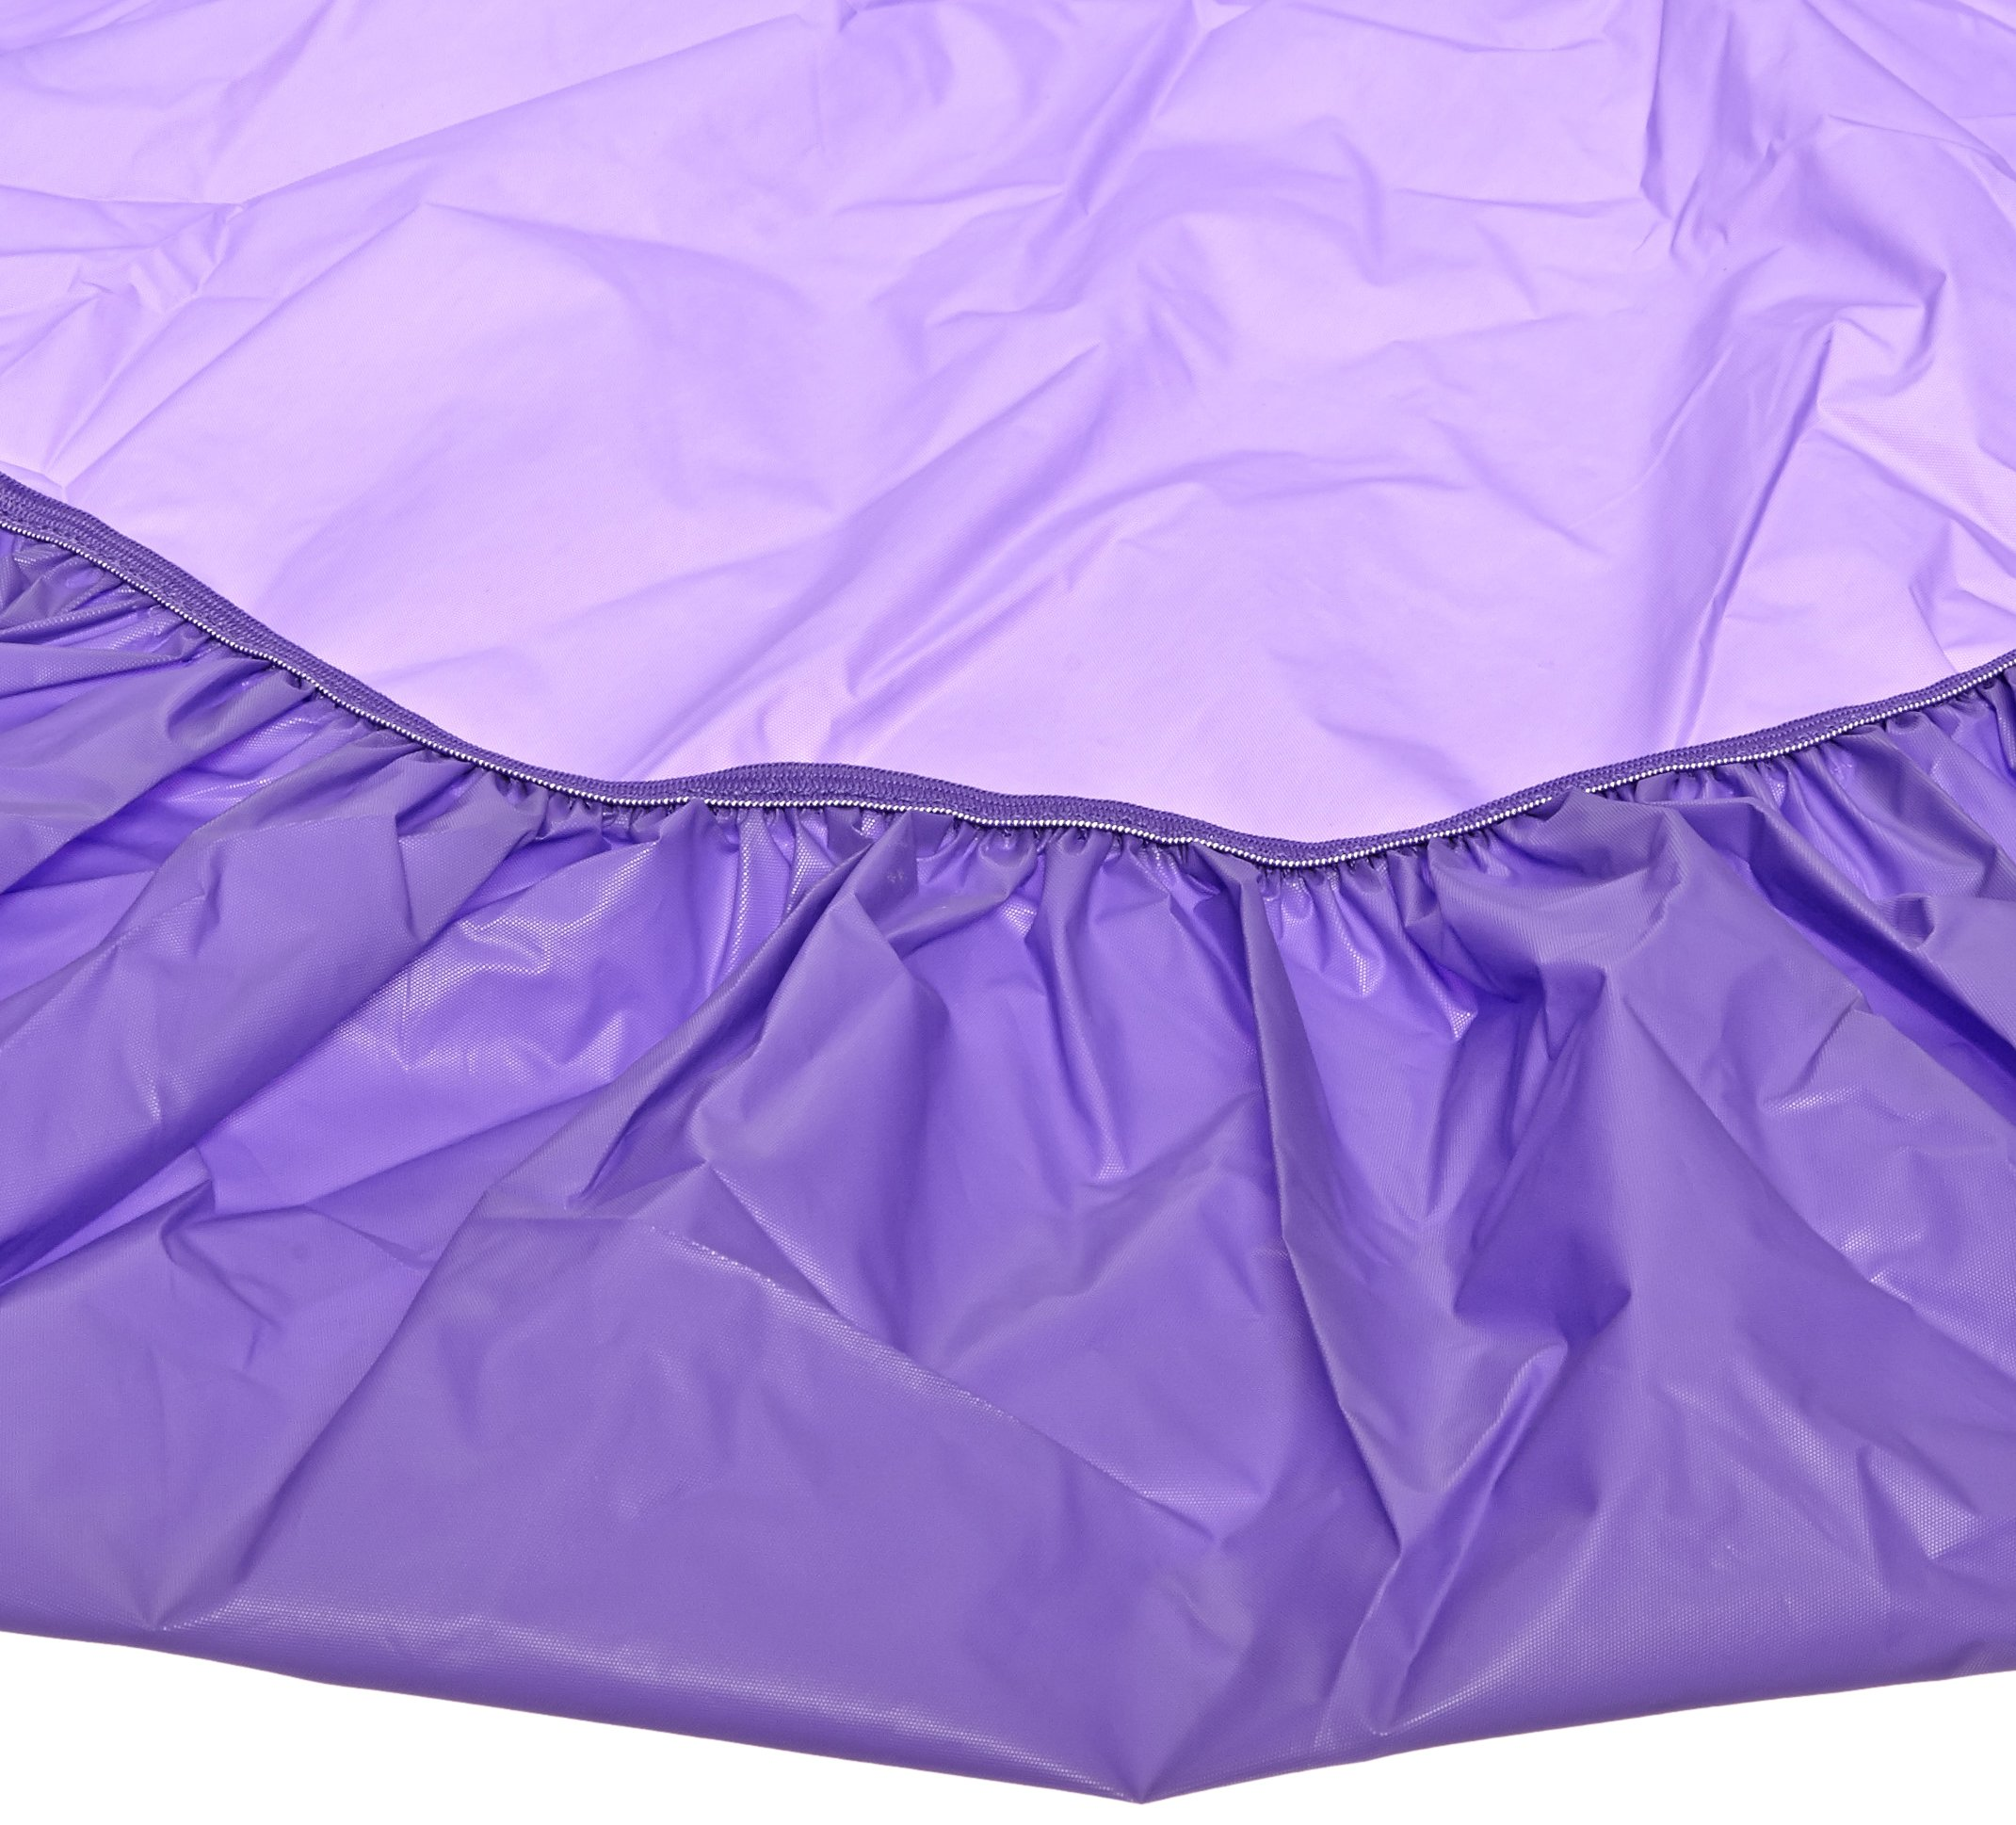 Kwik-Cover 72-P 72'' Round Kwik-Cover-Purple Fitted Table Cover (1 full case of 50) by Kwik-Covers